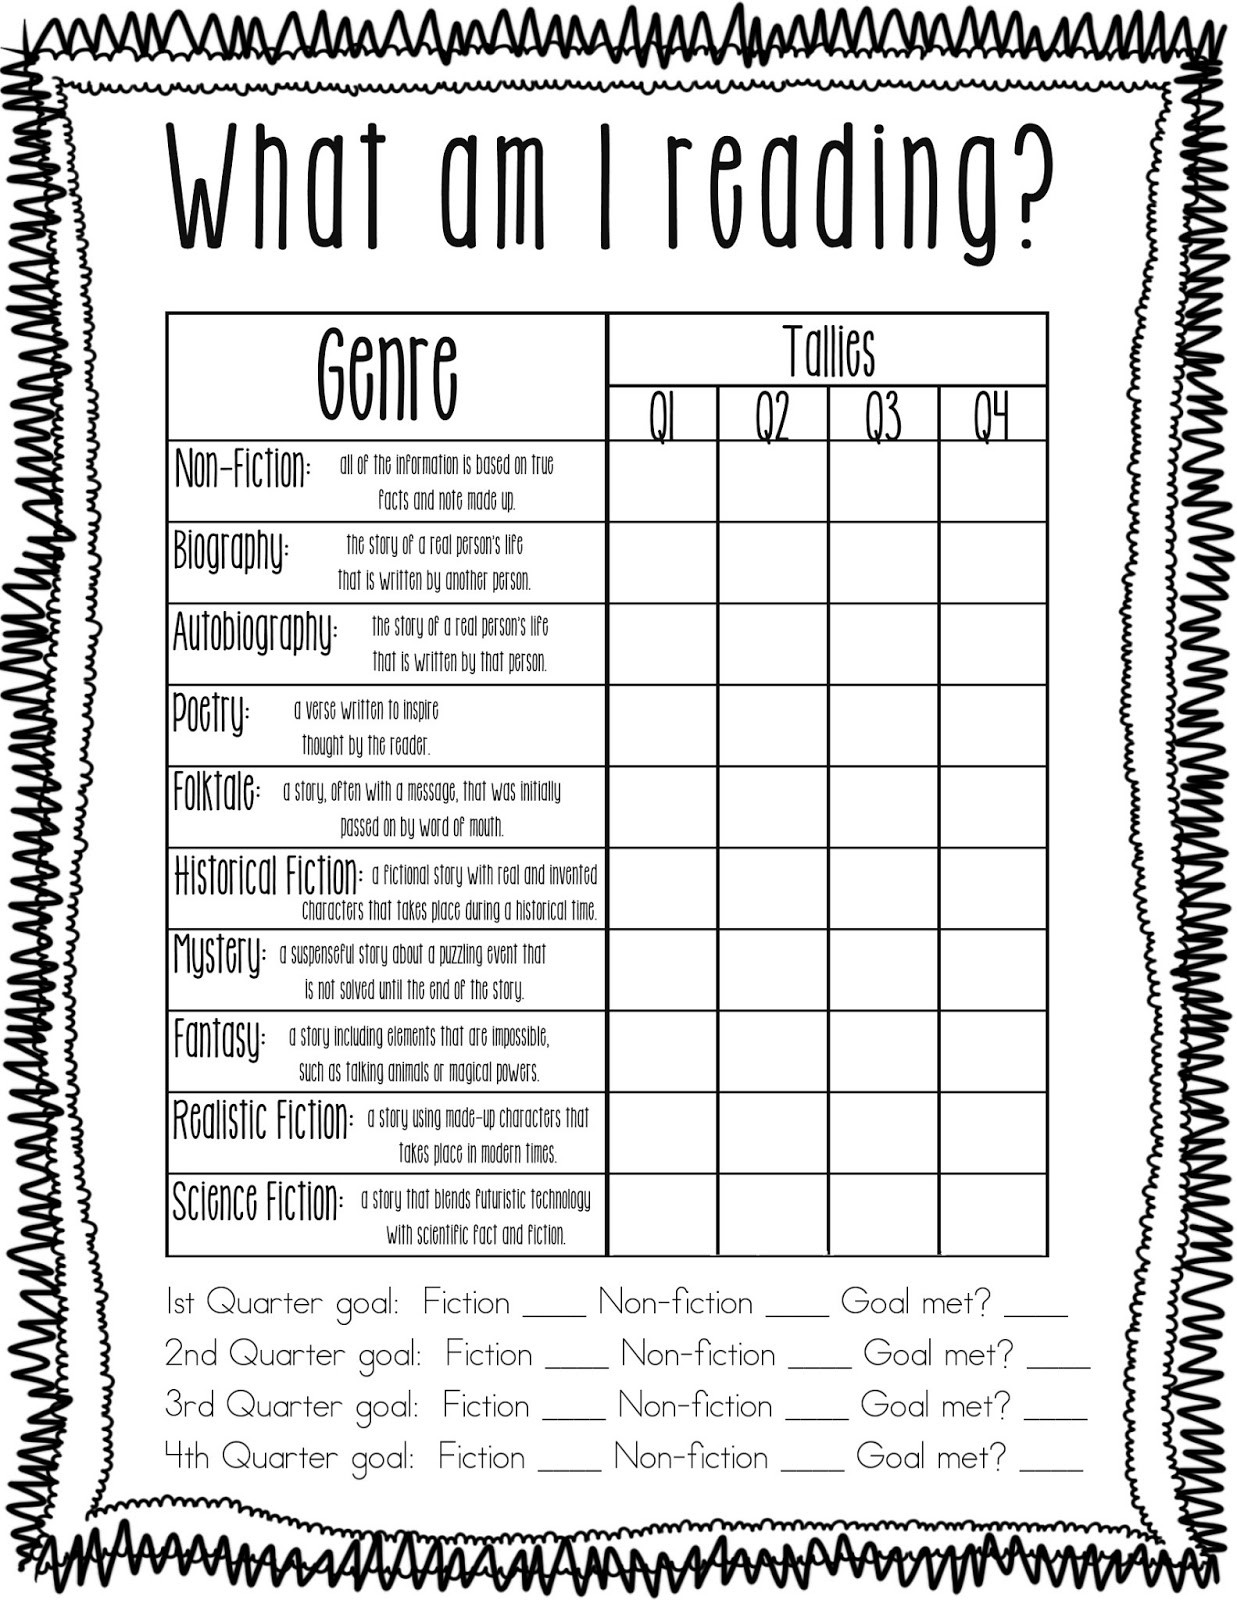 Genre Worksheets 4th Grade Interjection Worksheets Printable